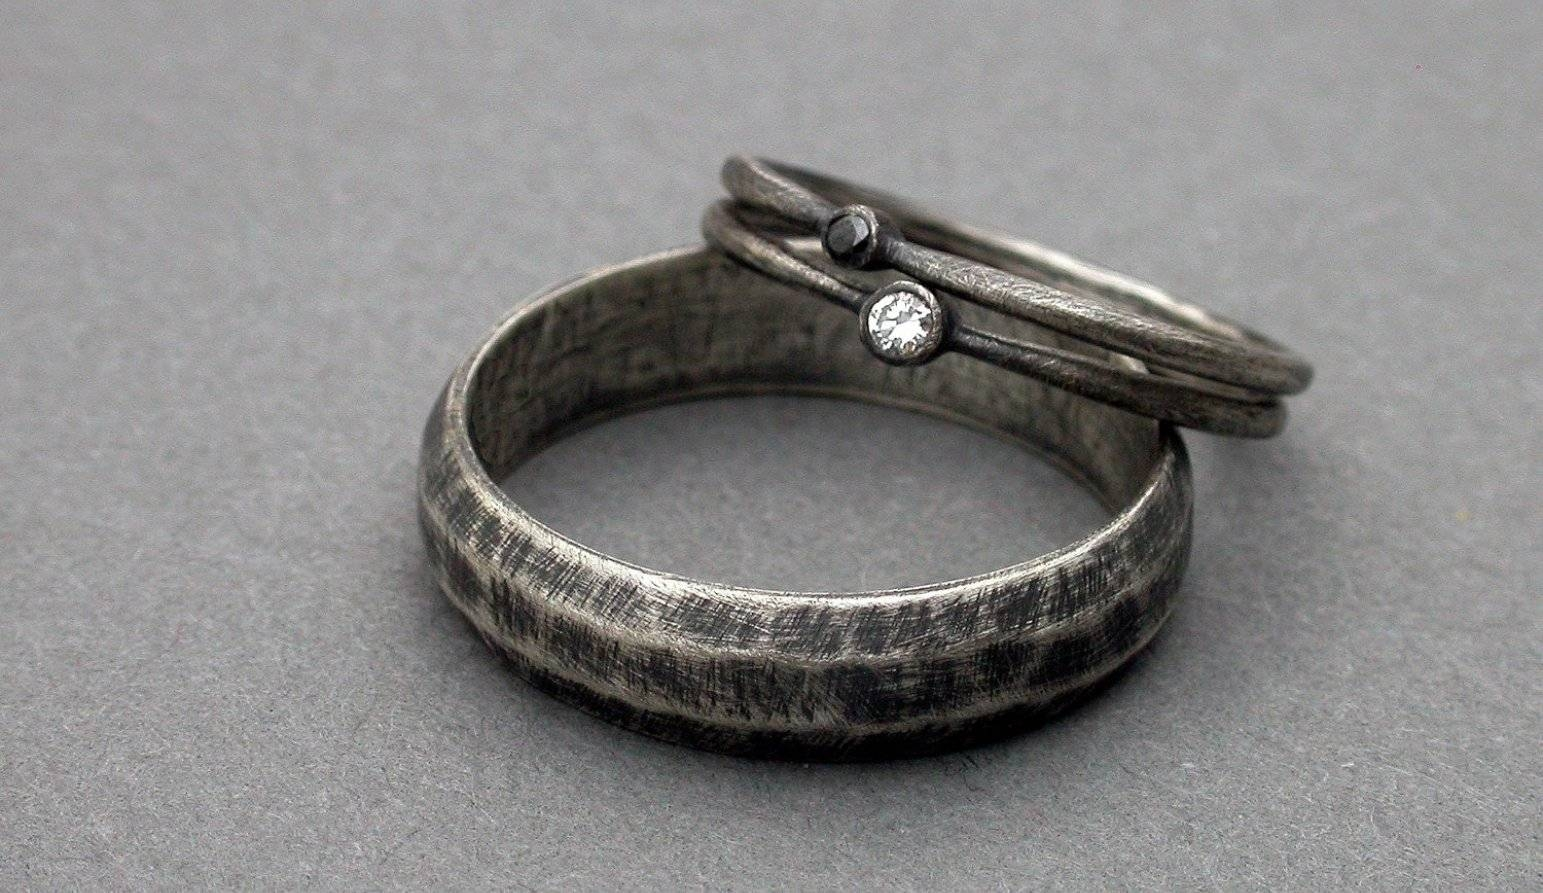 photo gallery of unusual wedding rings designs (viewing 4 of 15 photos)